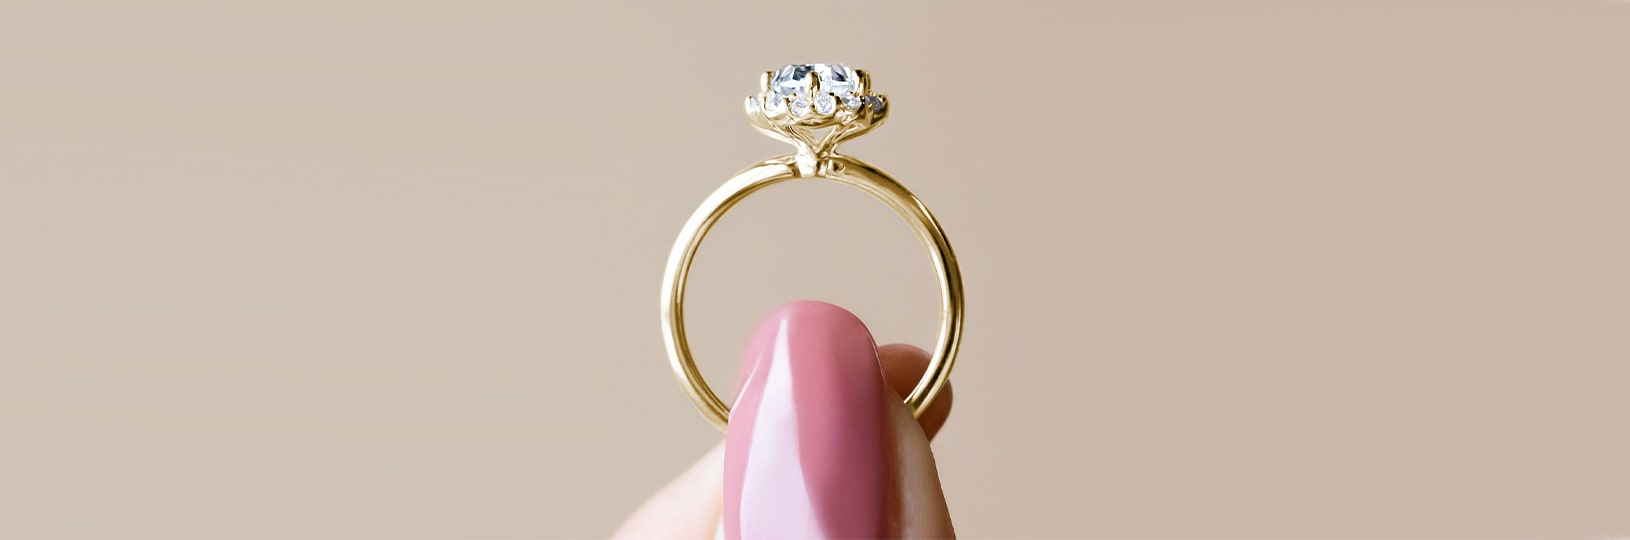 A yellow gold engagement ring in a solitaire setting